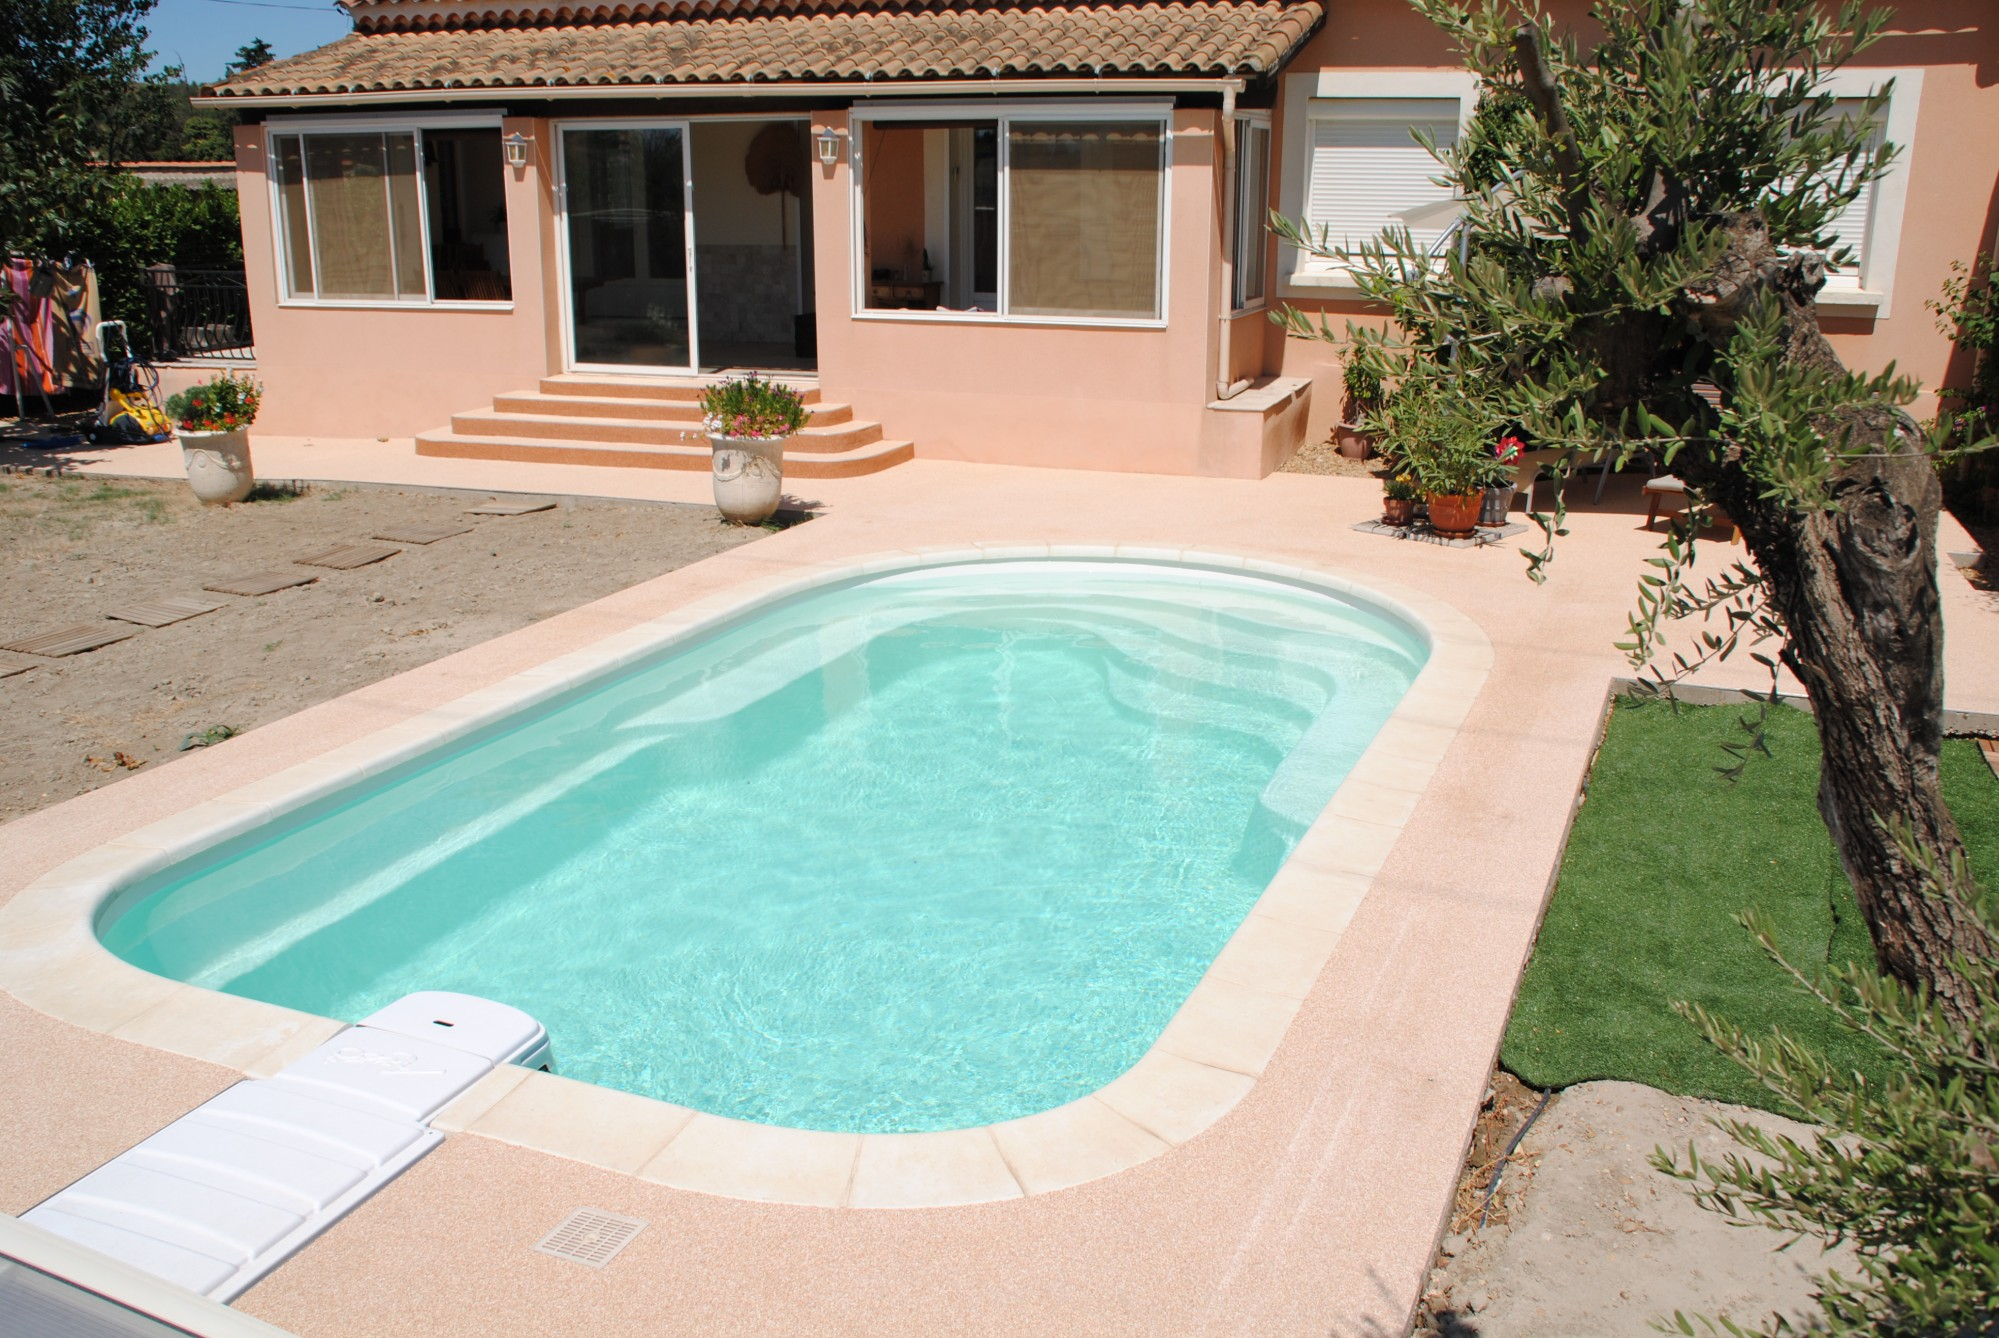 Prix d 39 une piscine polyester 7x4 pose comprise sur for Piscine coque pose comprise